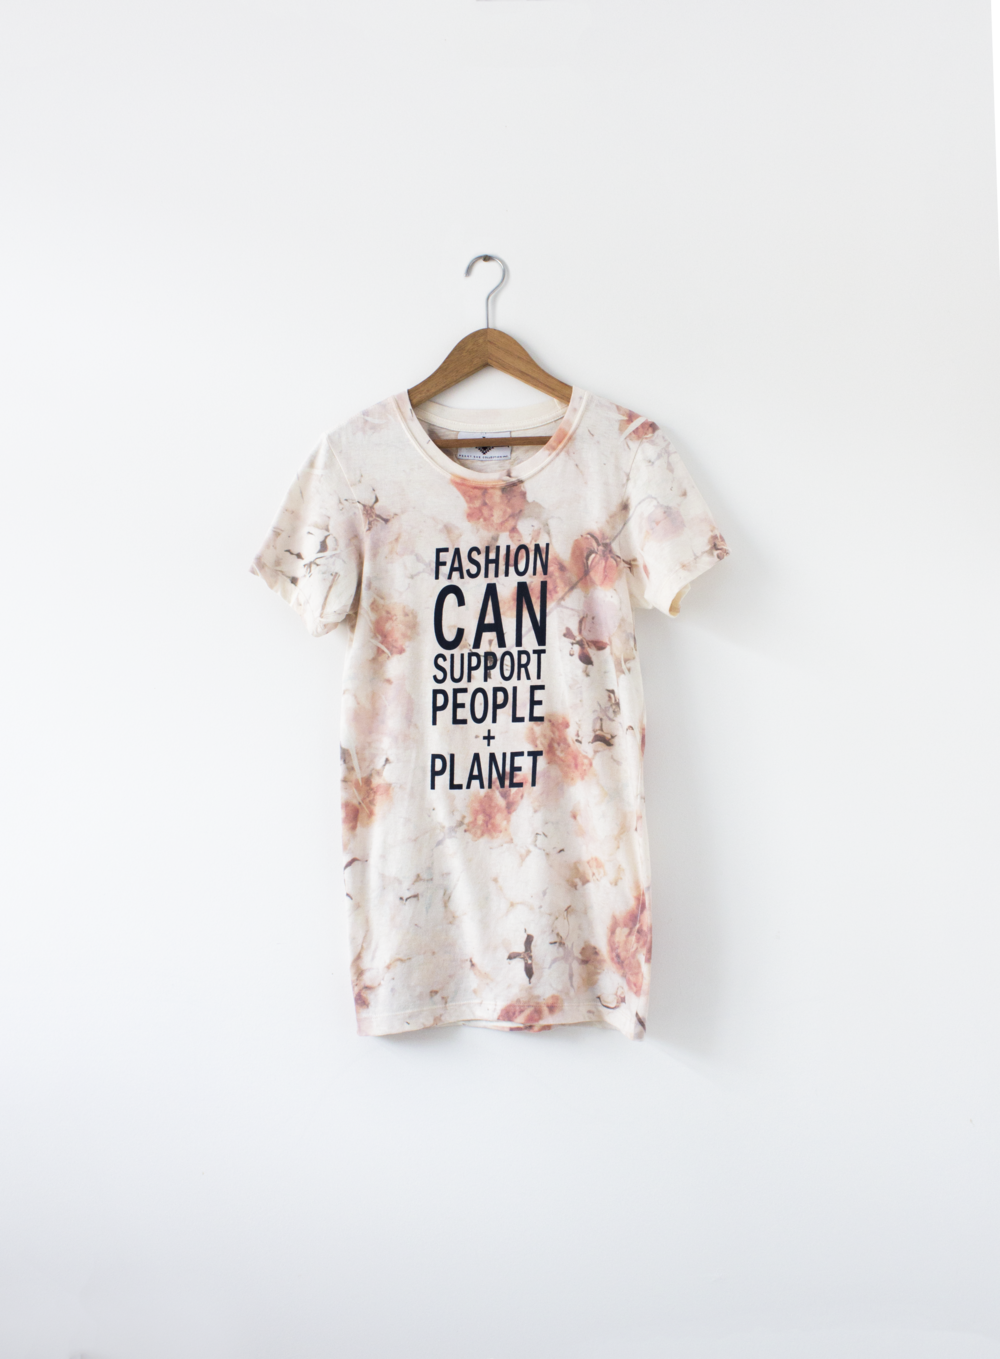 Fashion CAN Support People & Planet